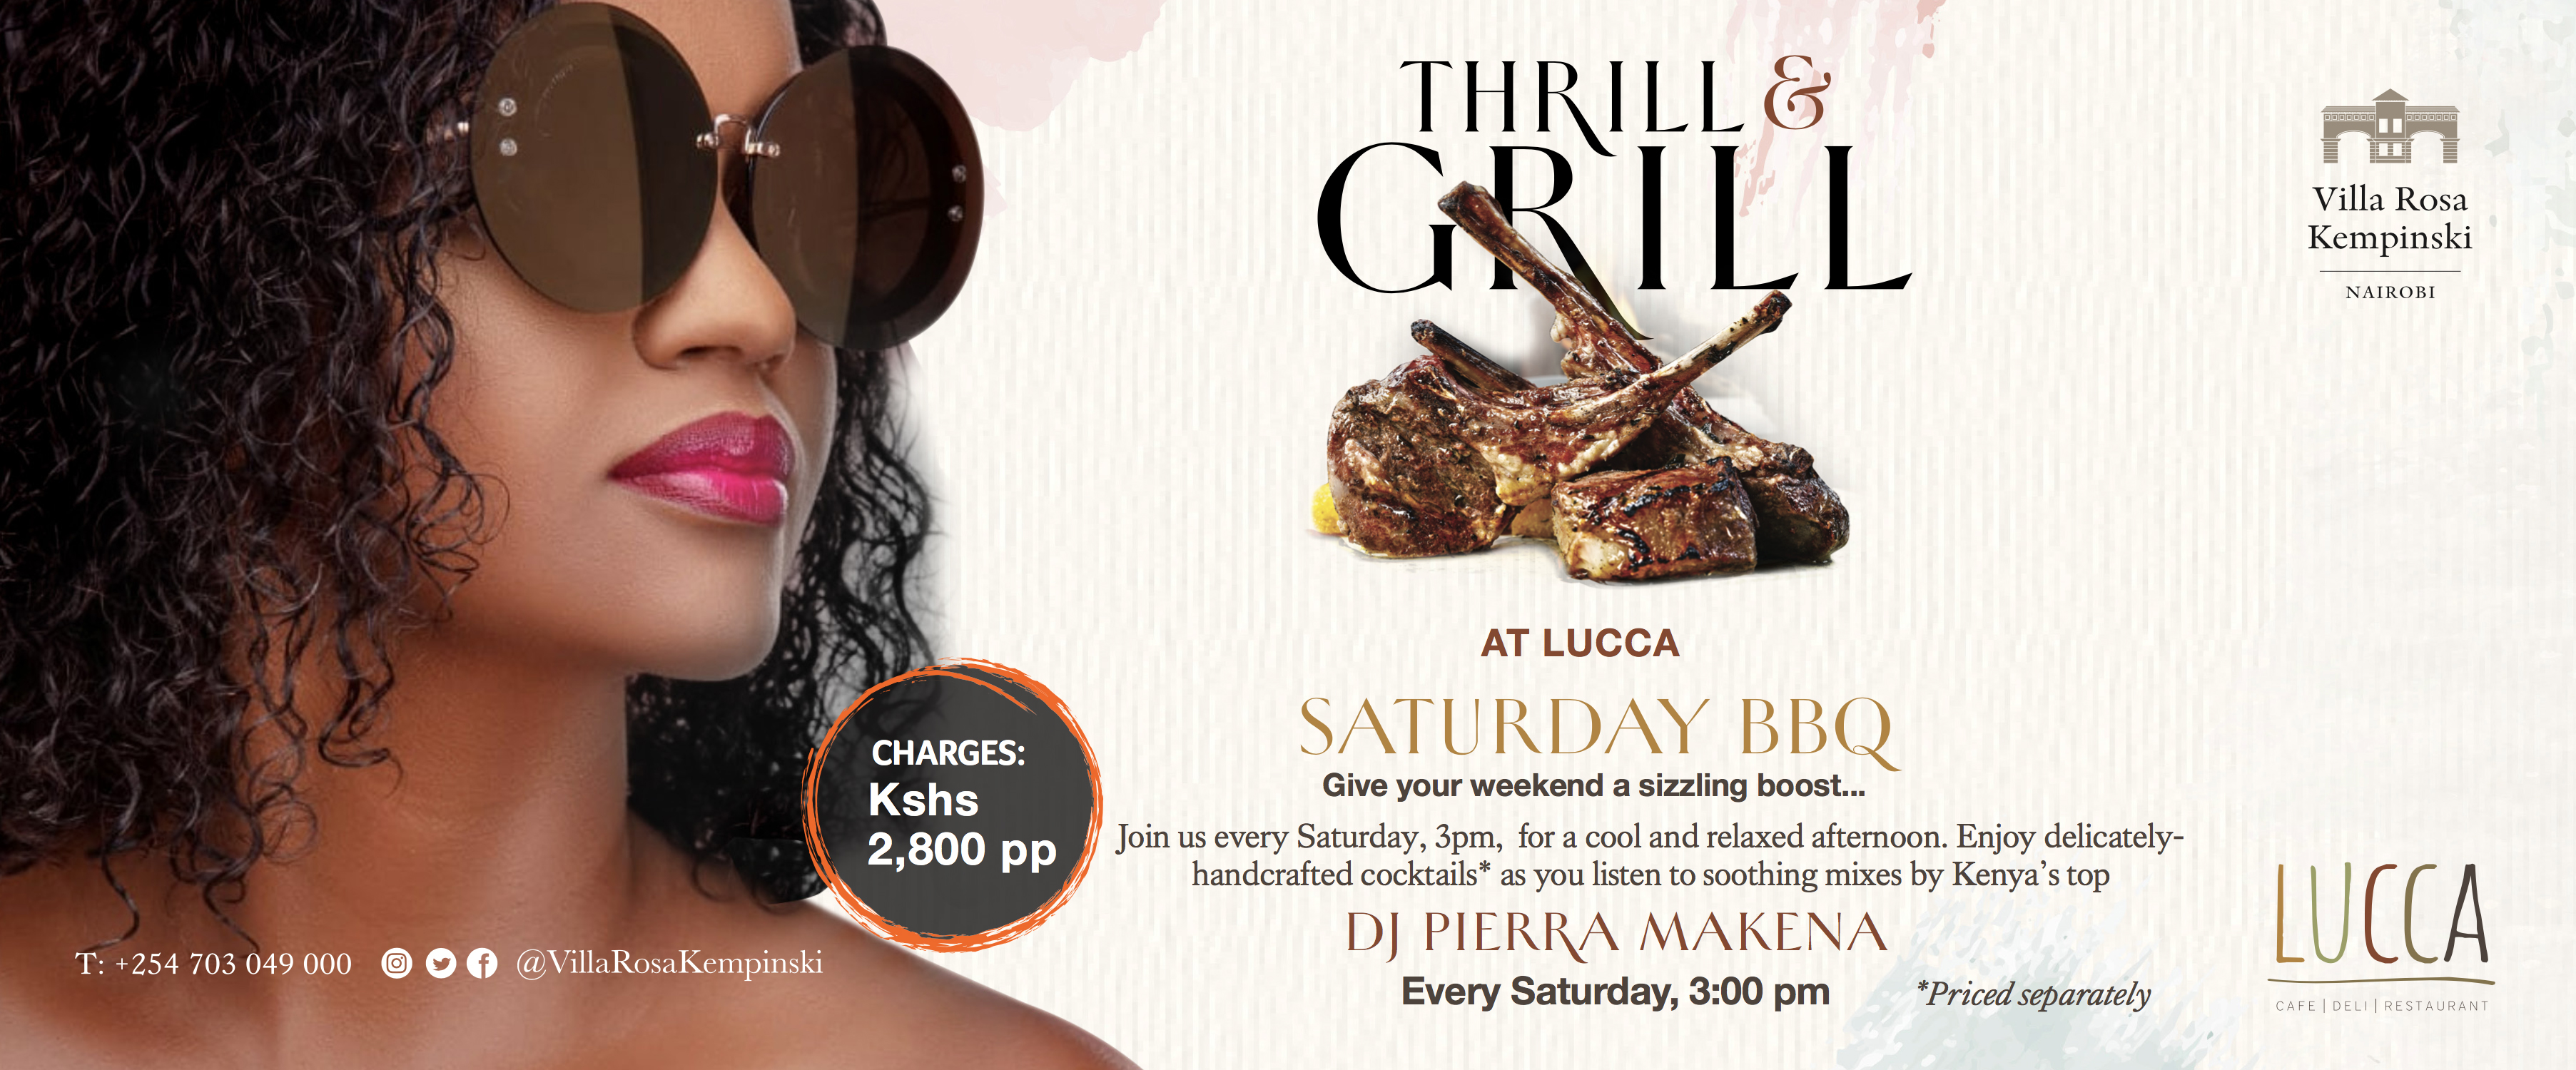 Thrill & Grill - Villa Rosa Kempinski's latest culinary food offerings